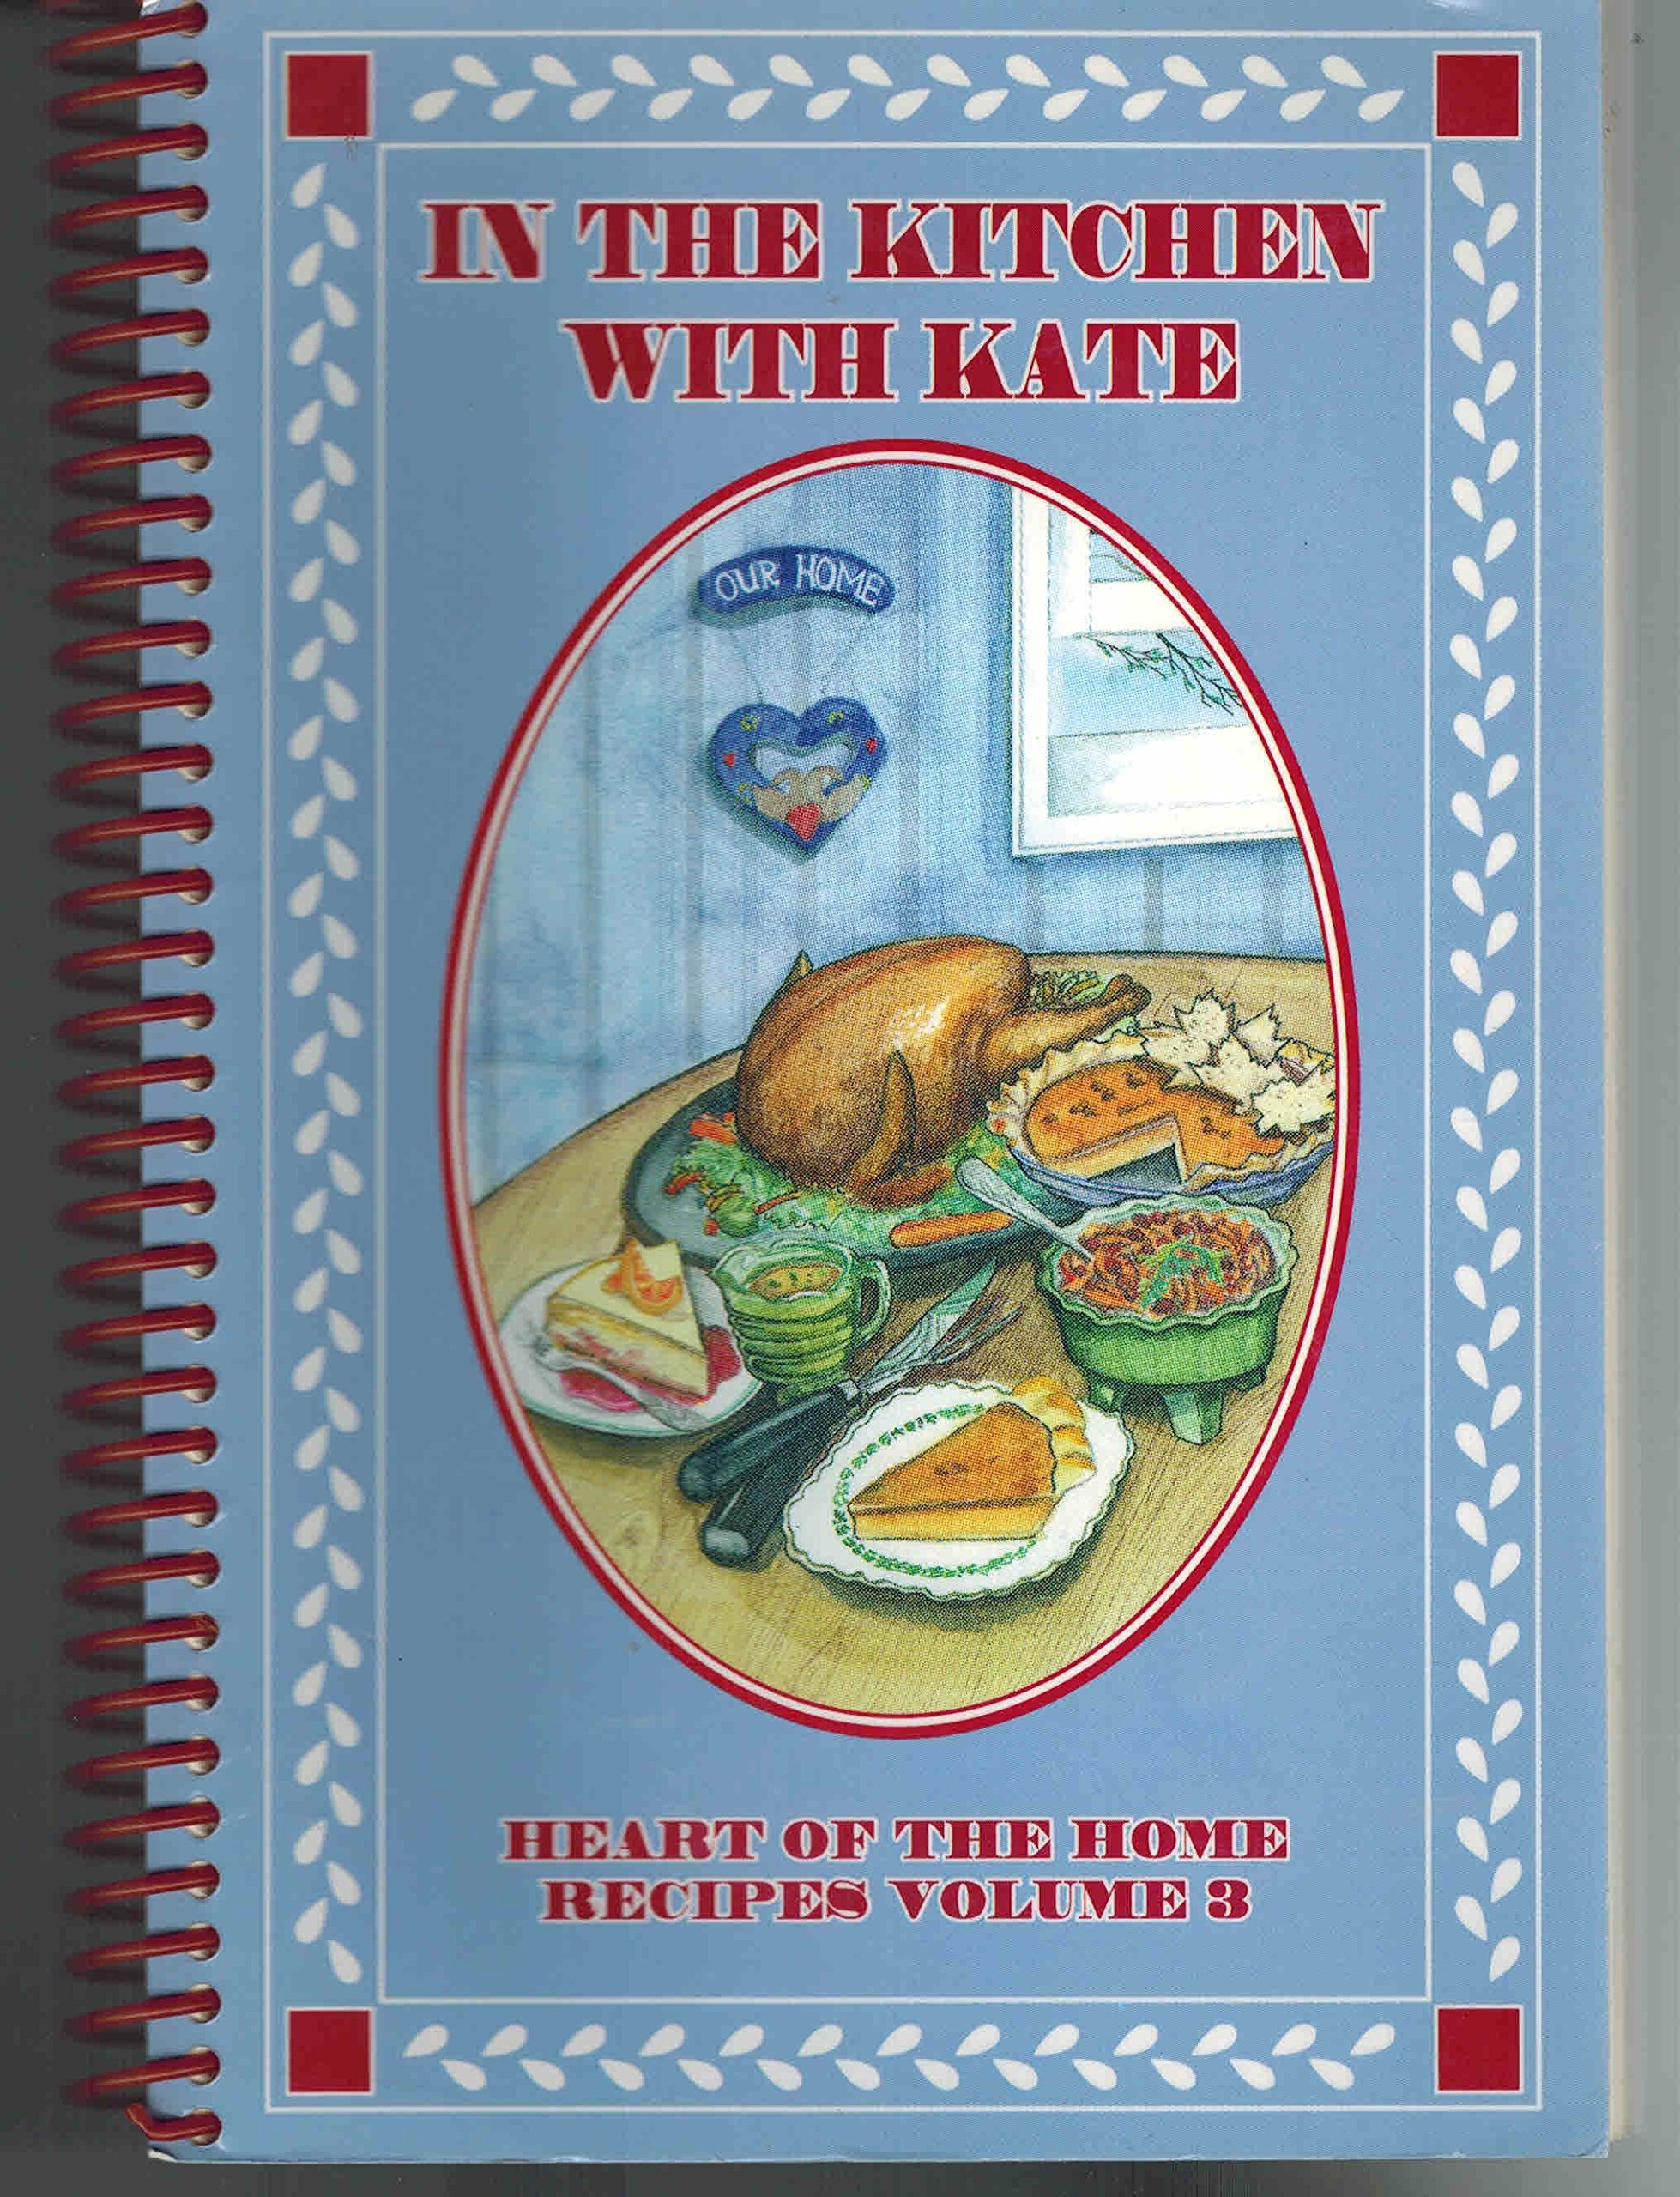 In The Kitchen With Kate Heart Of The Home Recipes Volume 3